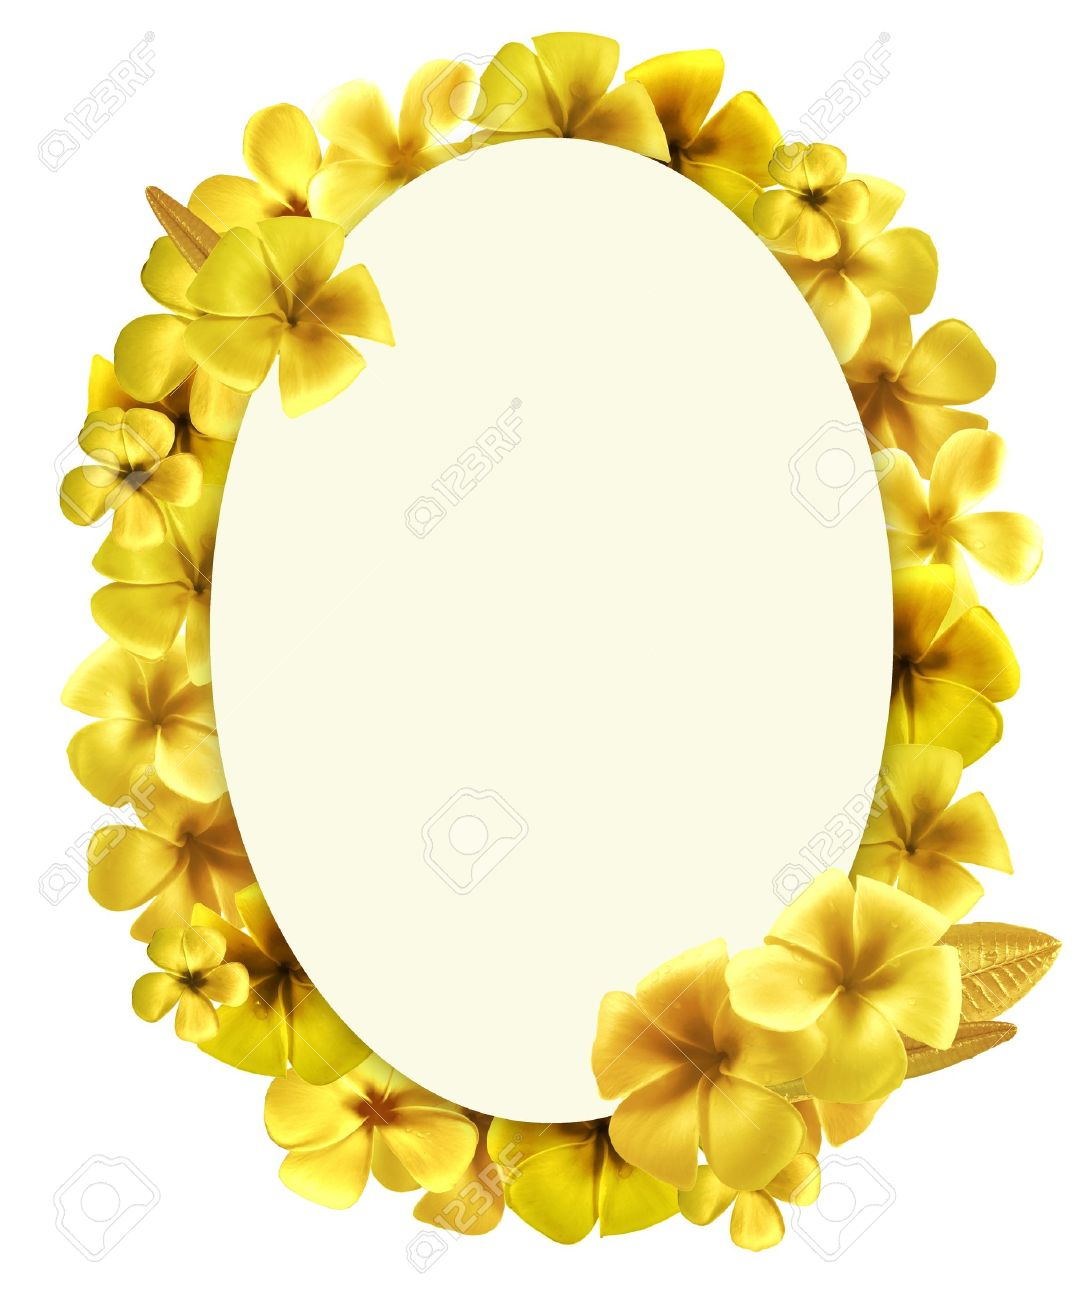 Design Oval Shape With Golden Plumeria Flowers Picture Frames ...